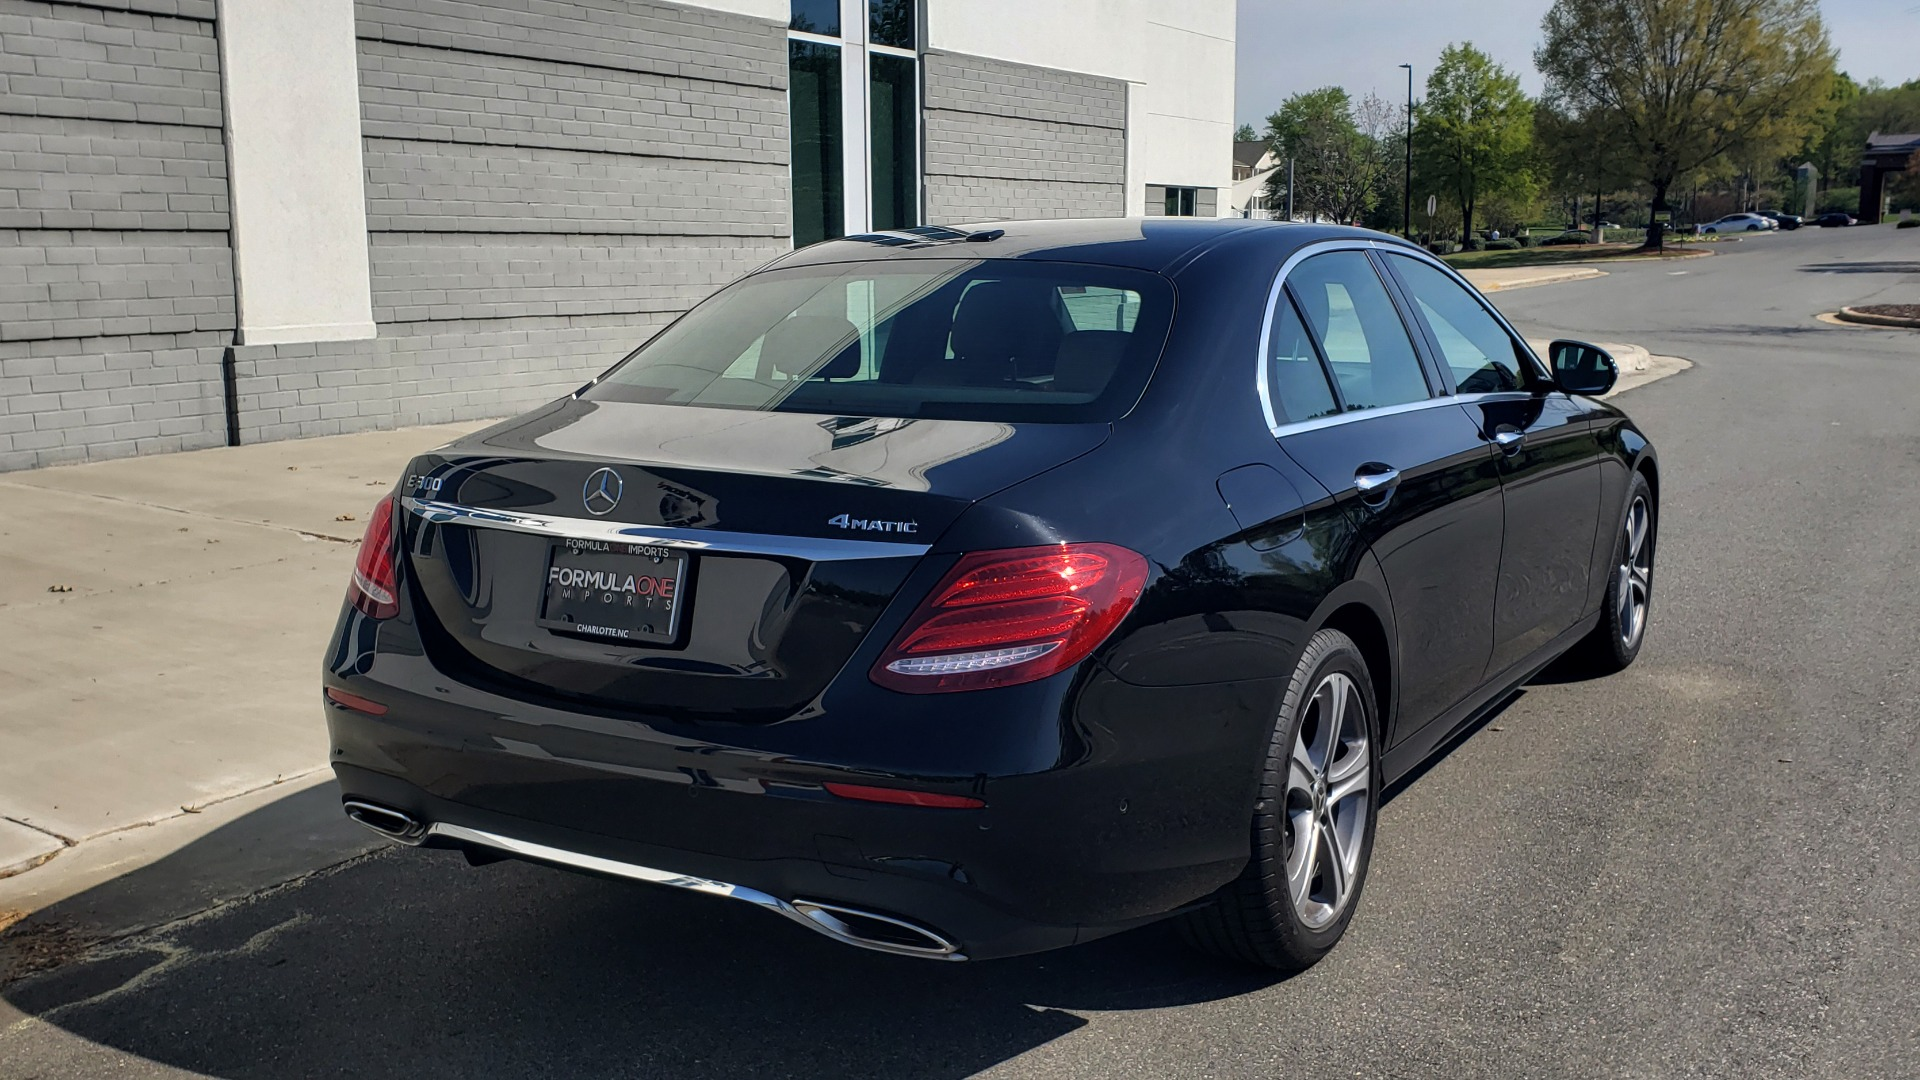 Used 2018 Mercedes-Benz E-CLASS E 300 4MATIC PREMIUM / NAV / BURMESTER SND / BSM / REARVIEW for sale $33,995 at Formula Imports in Charlotte NC 28227 10